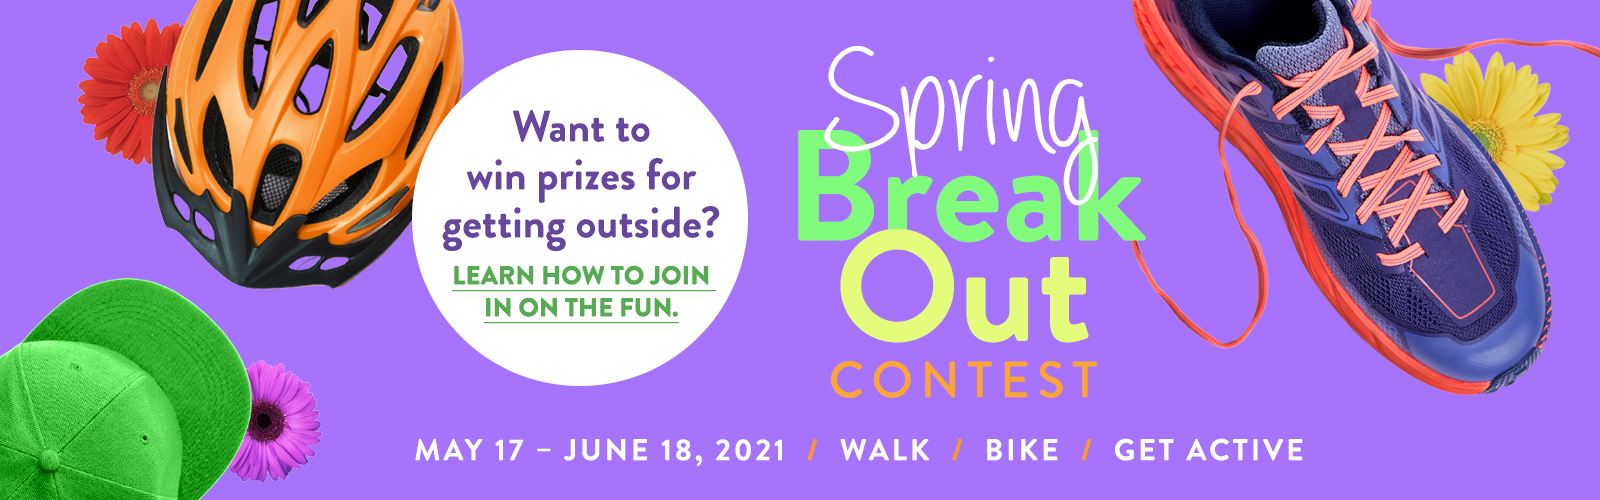 Spring Break Out Contest